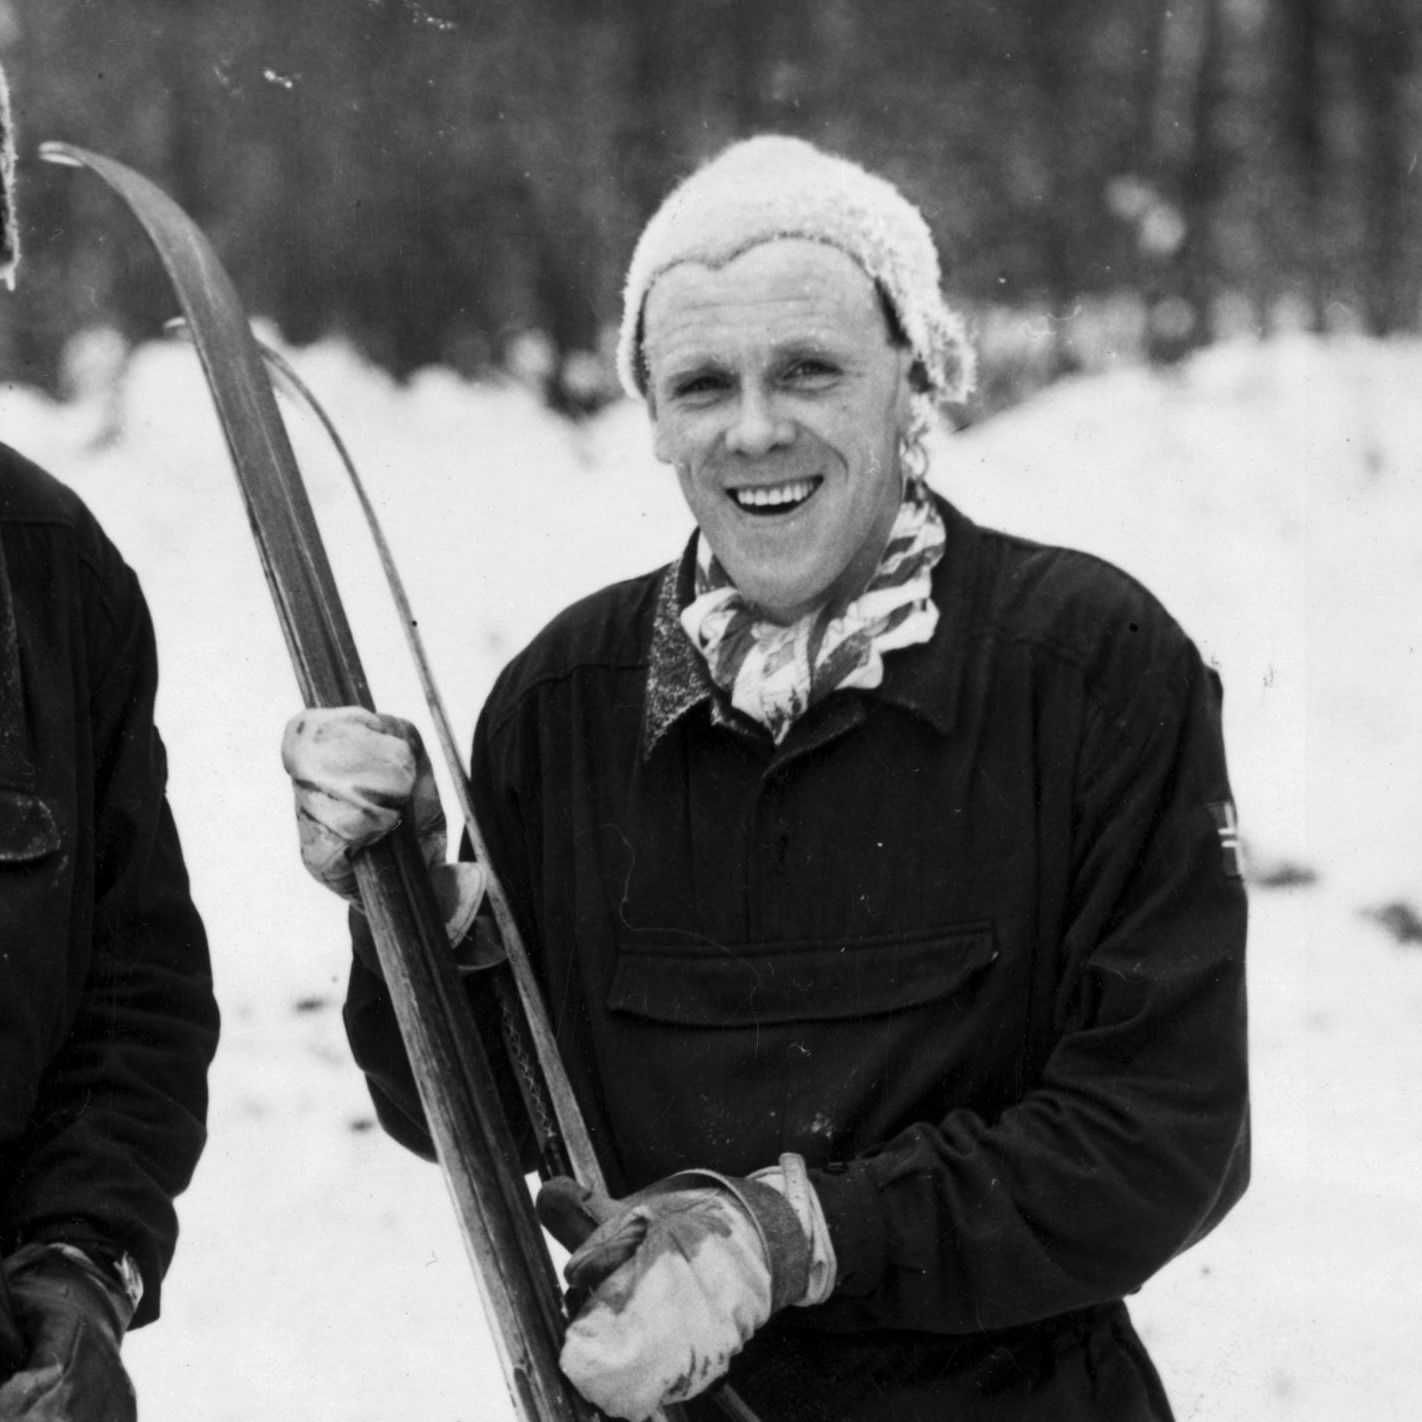 Olympic cross-country skiing champion Brusveen dies age 93